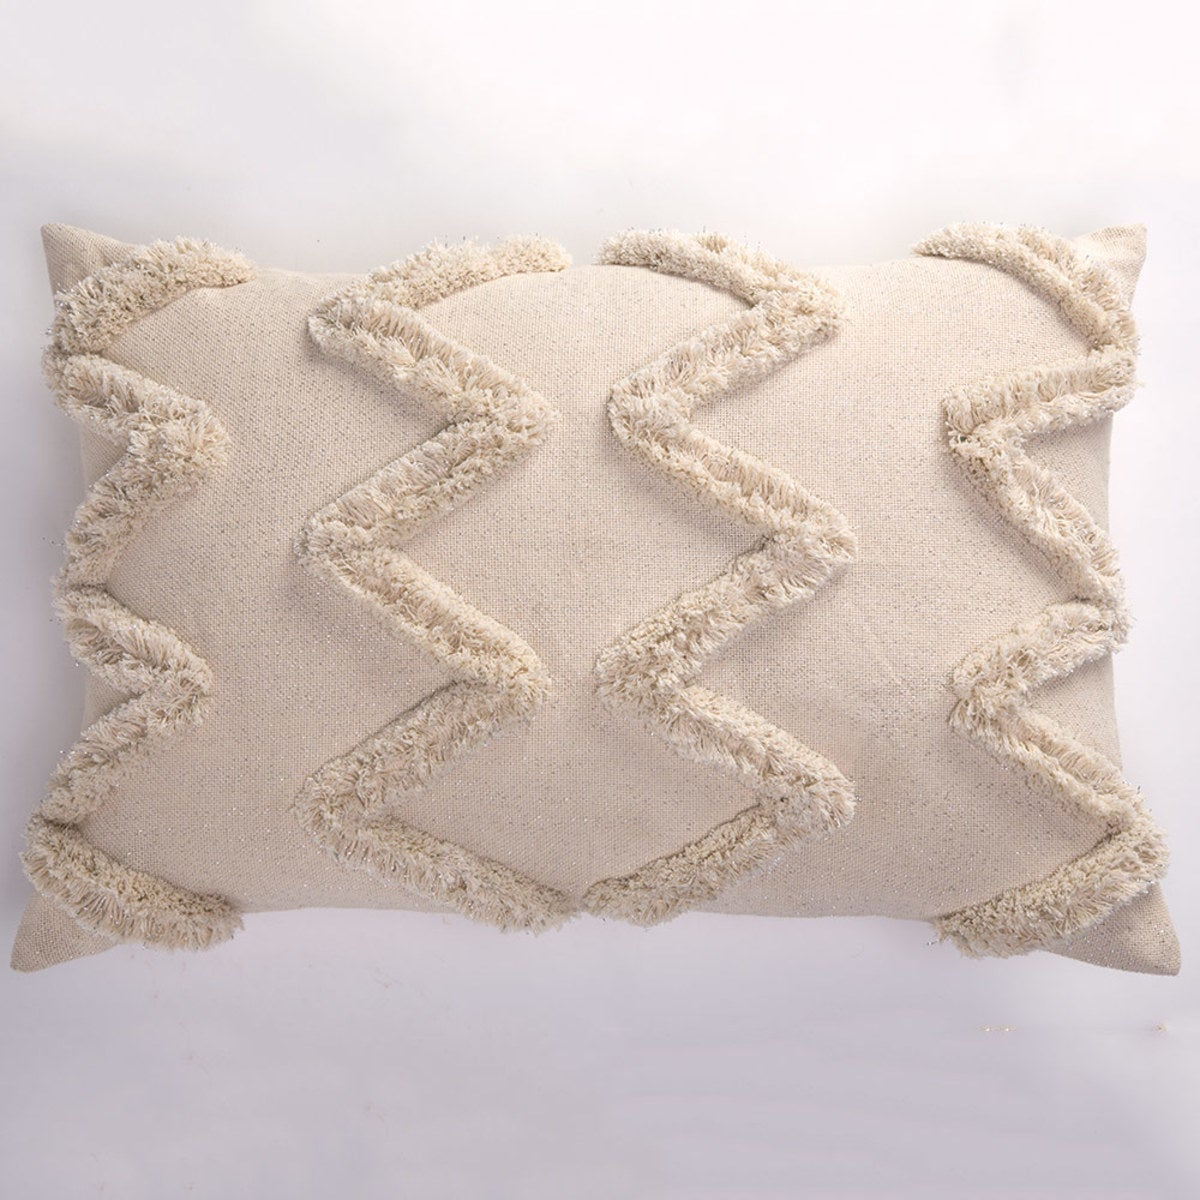 "Large Shimmering Rectangle Pillow Cover, 18"" sq. - Large Rectangle"